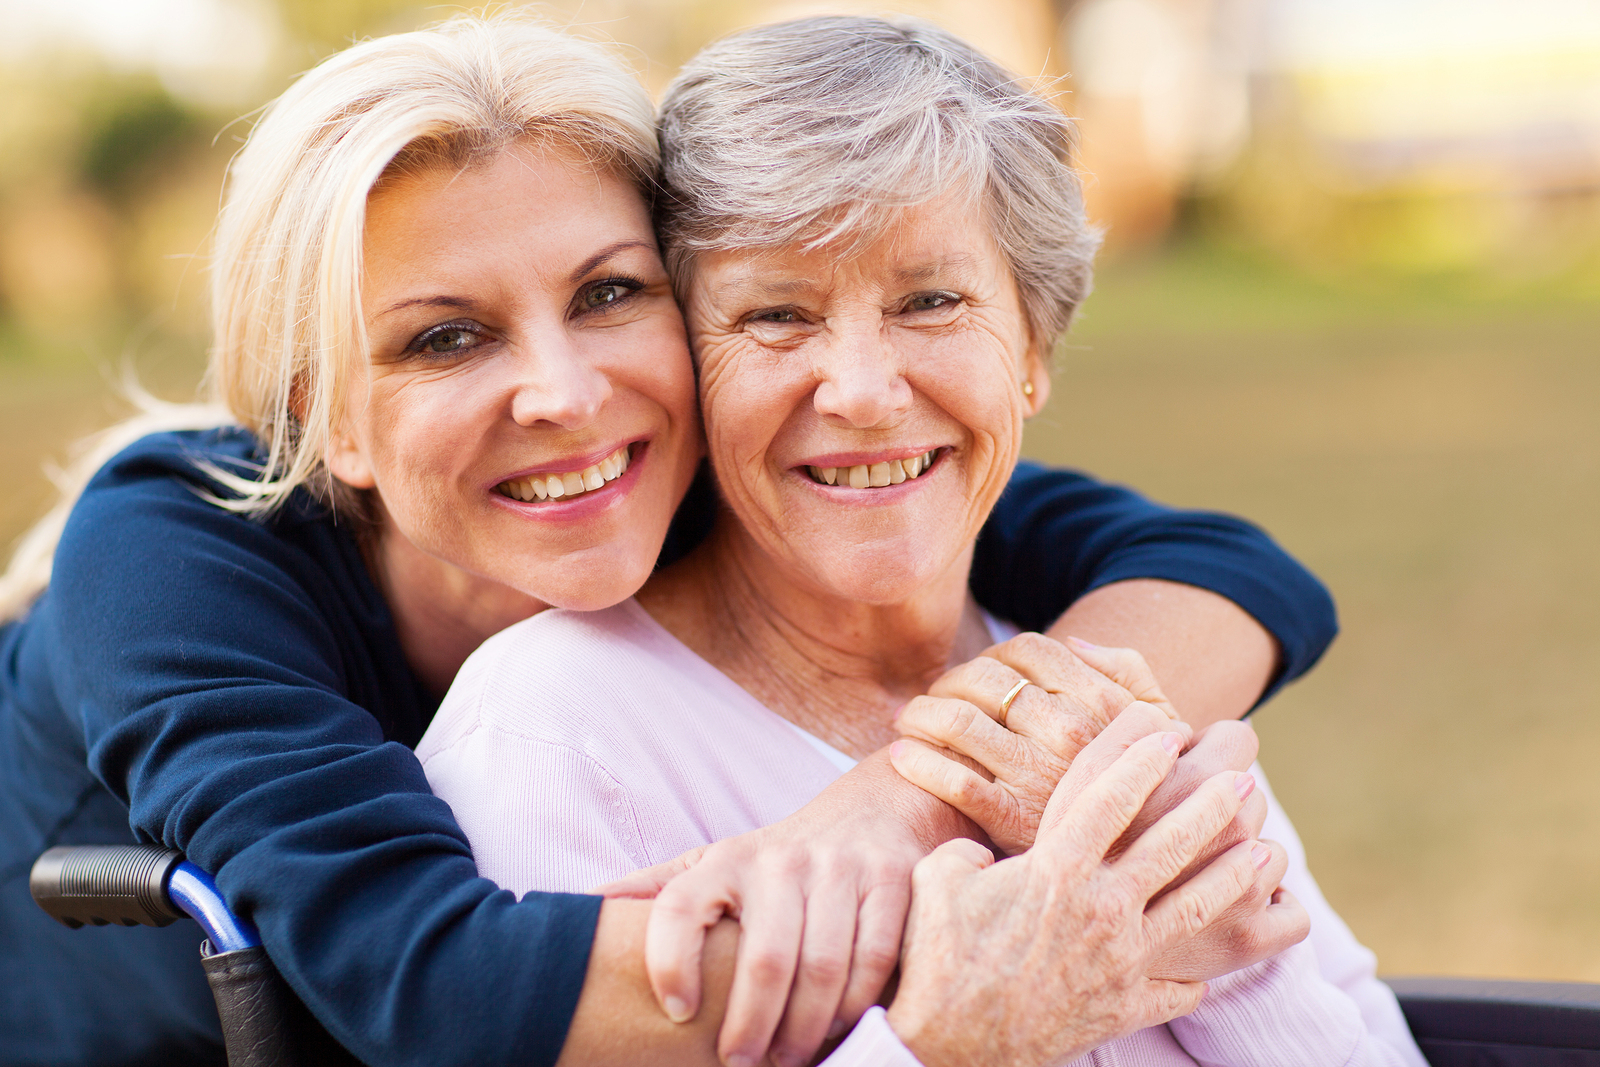 Senior Care in Radnor PA: Have a Backup Plan